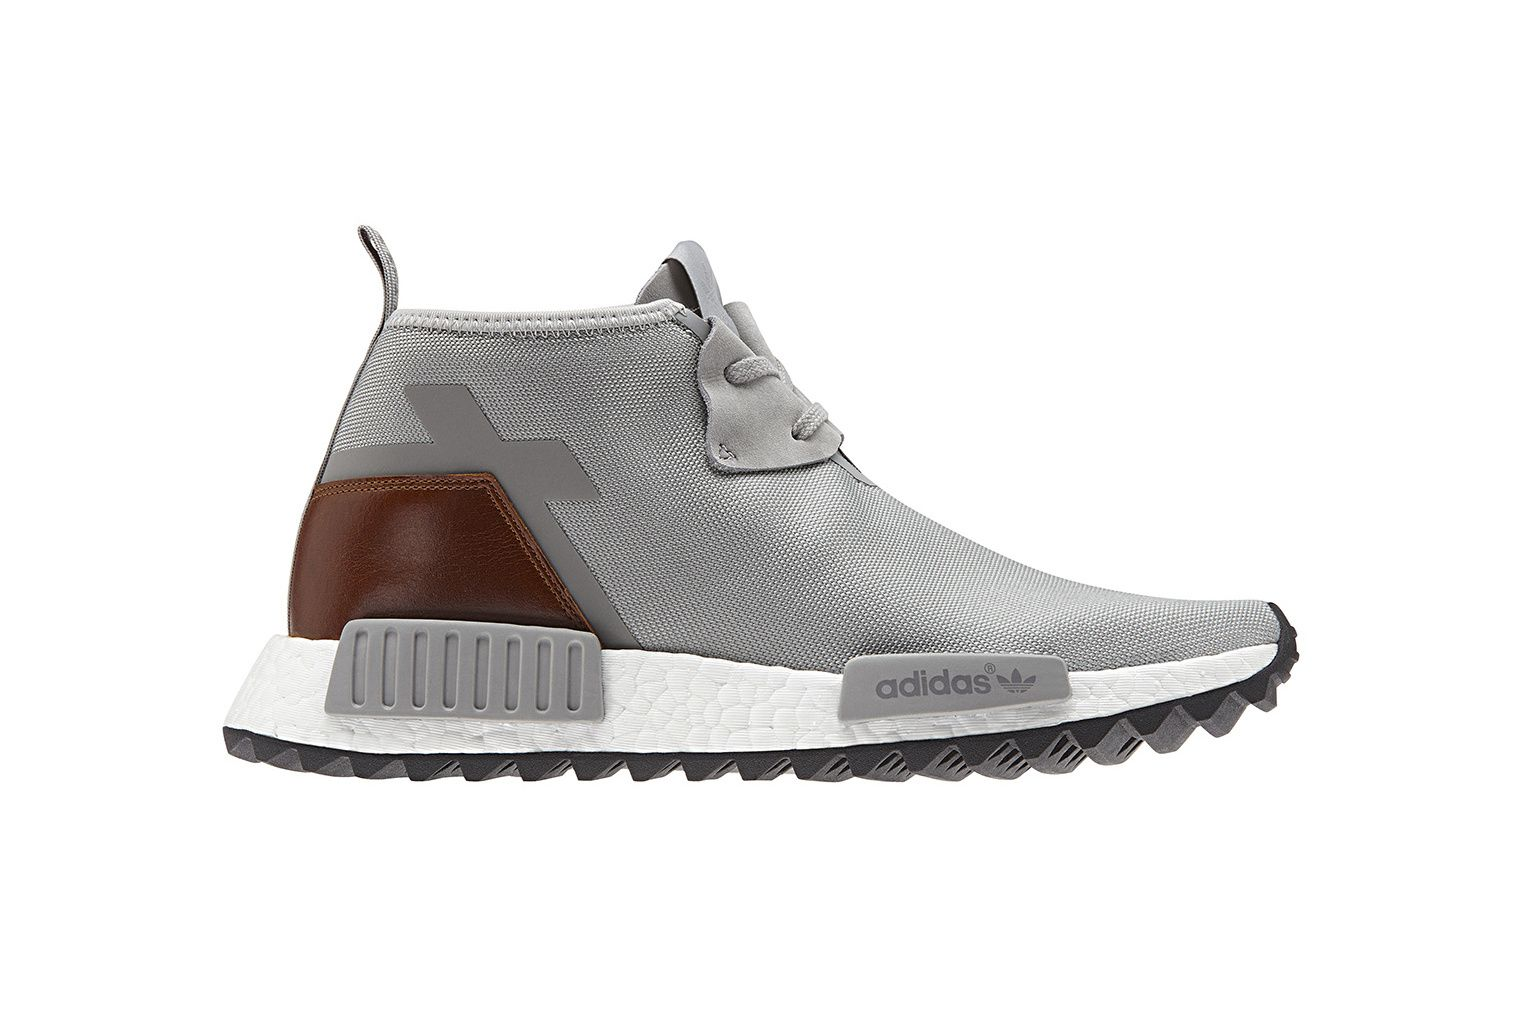 adidas nmd c1 trail shoes Gopher Tortoise Services, Inc. NMD_C1 Trail